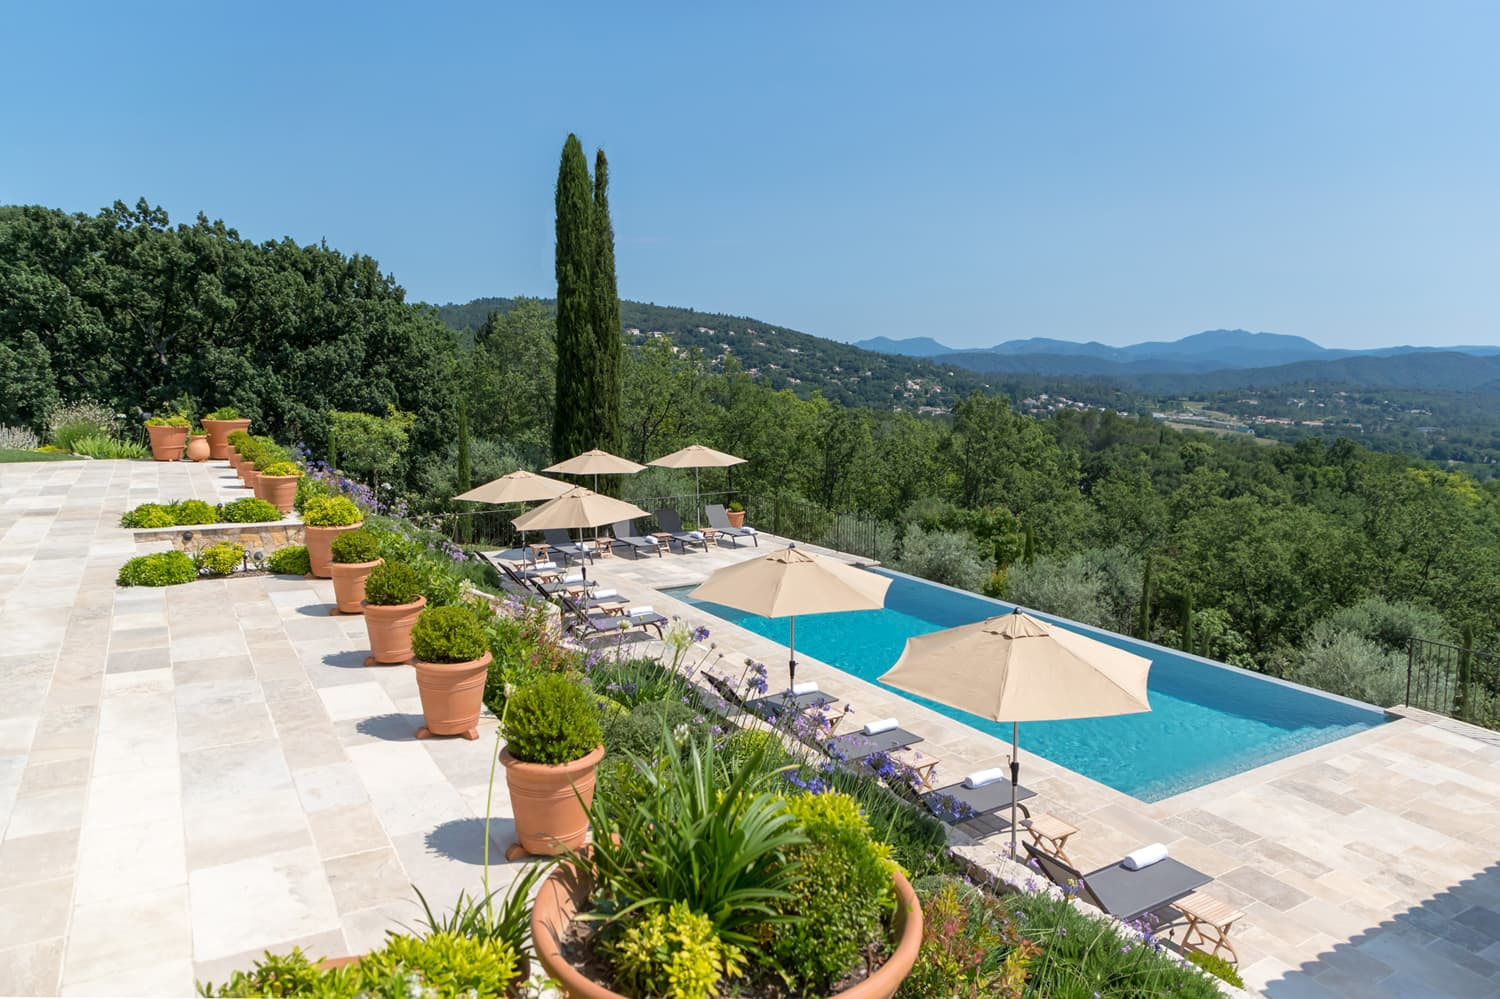 Holiday home in Provence, Côte d'Azur with private swimming pool | Le Grand Mas de Valcros